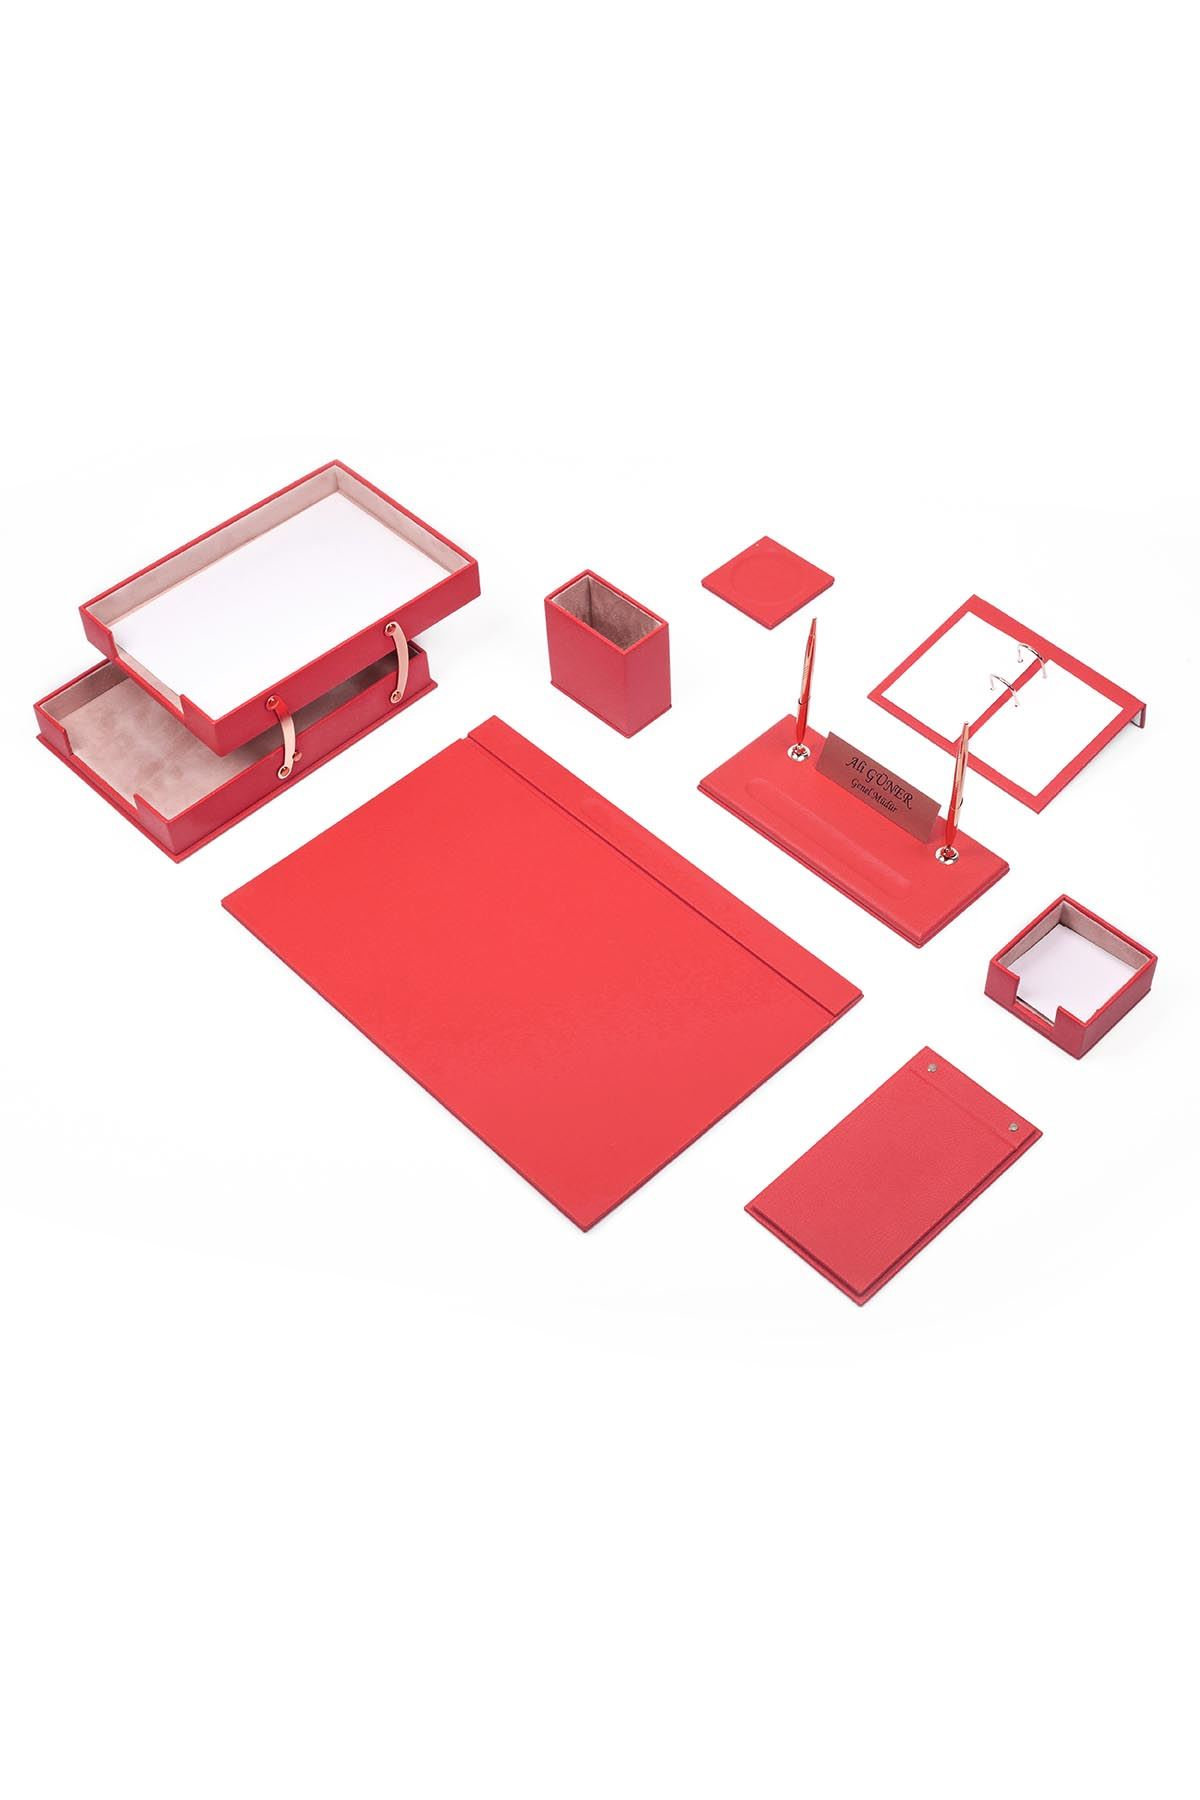 Luxury Leather Desk Set Red 10 Accessories - Double Document Tray